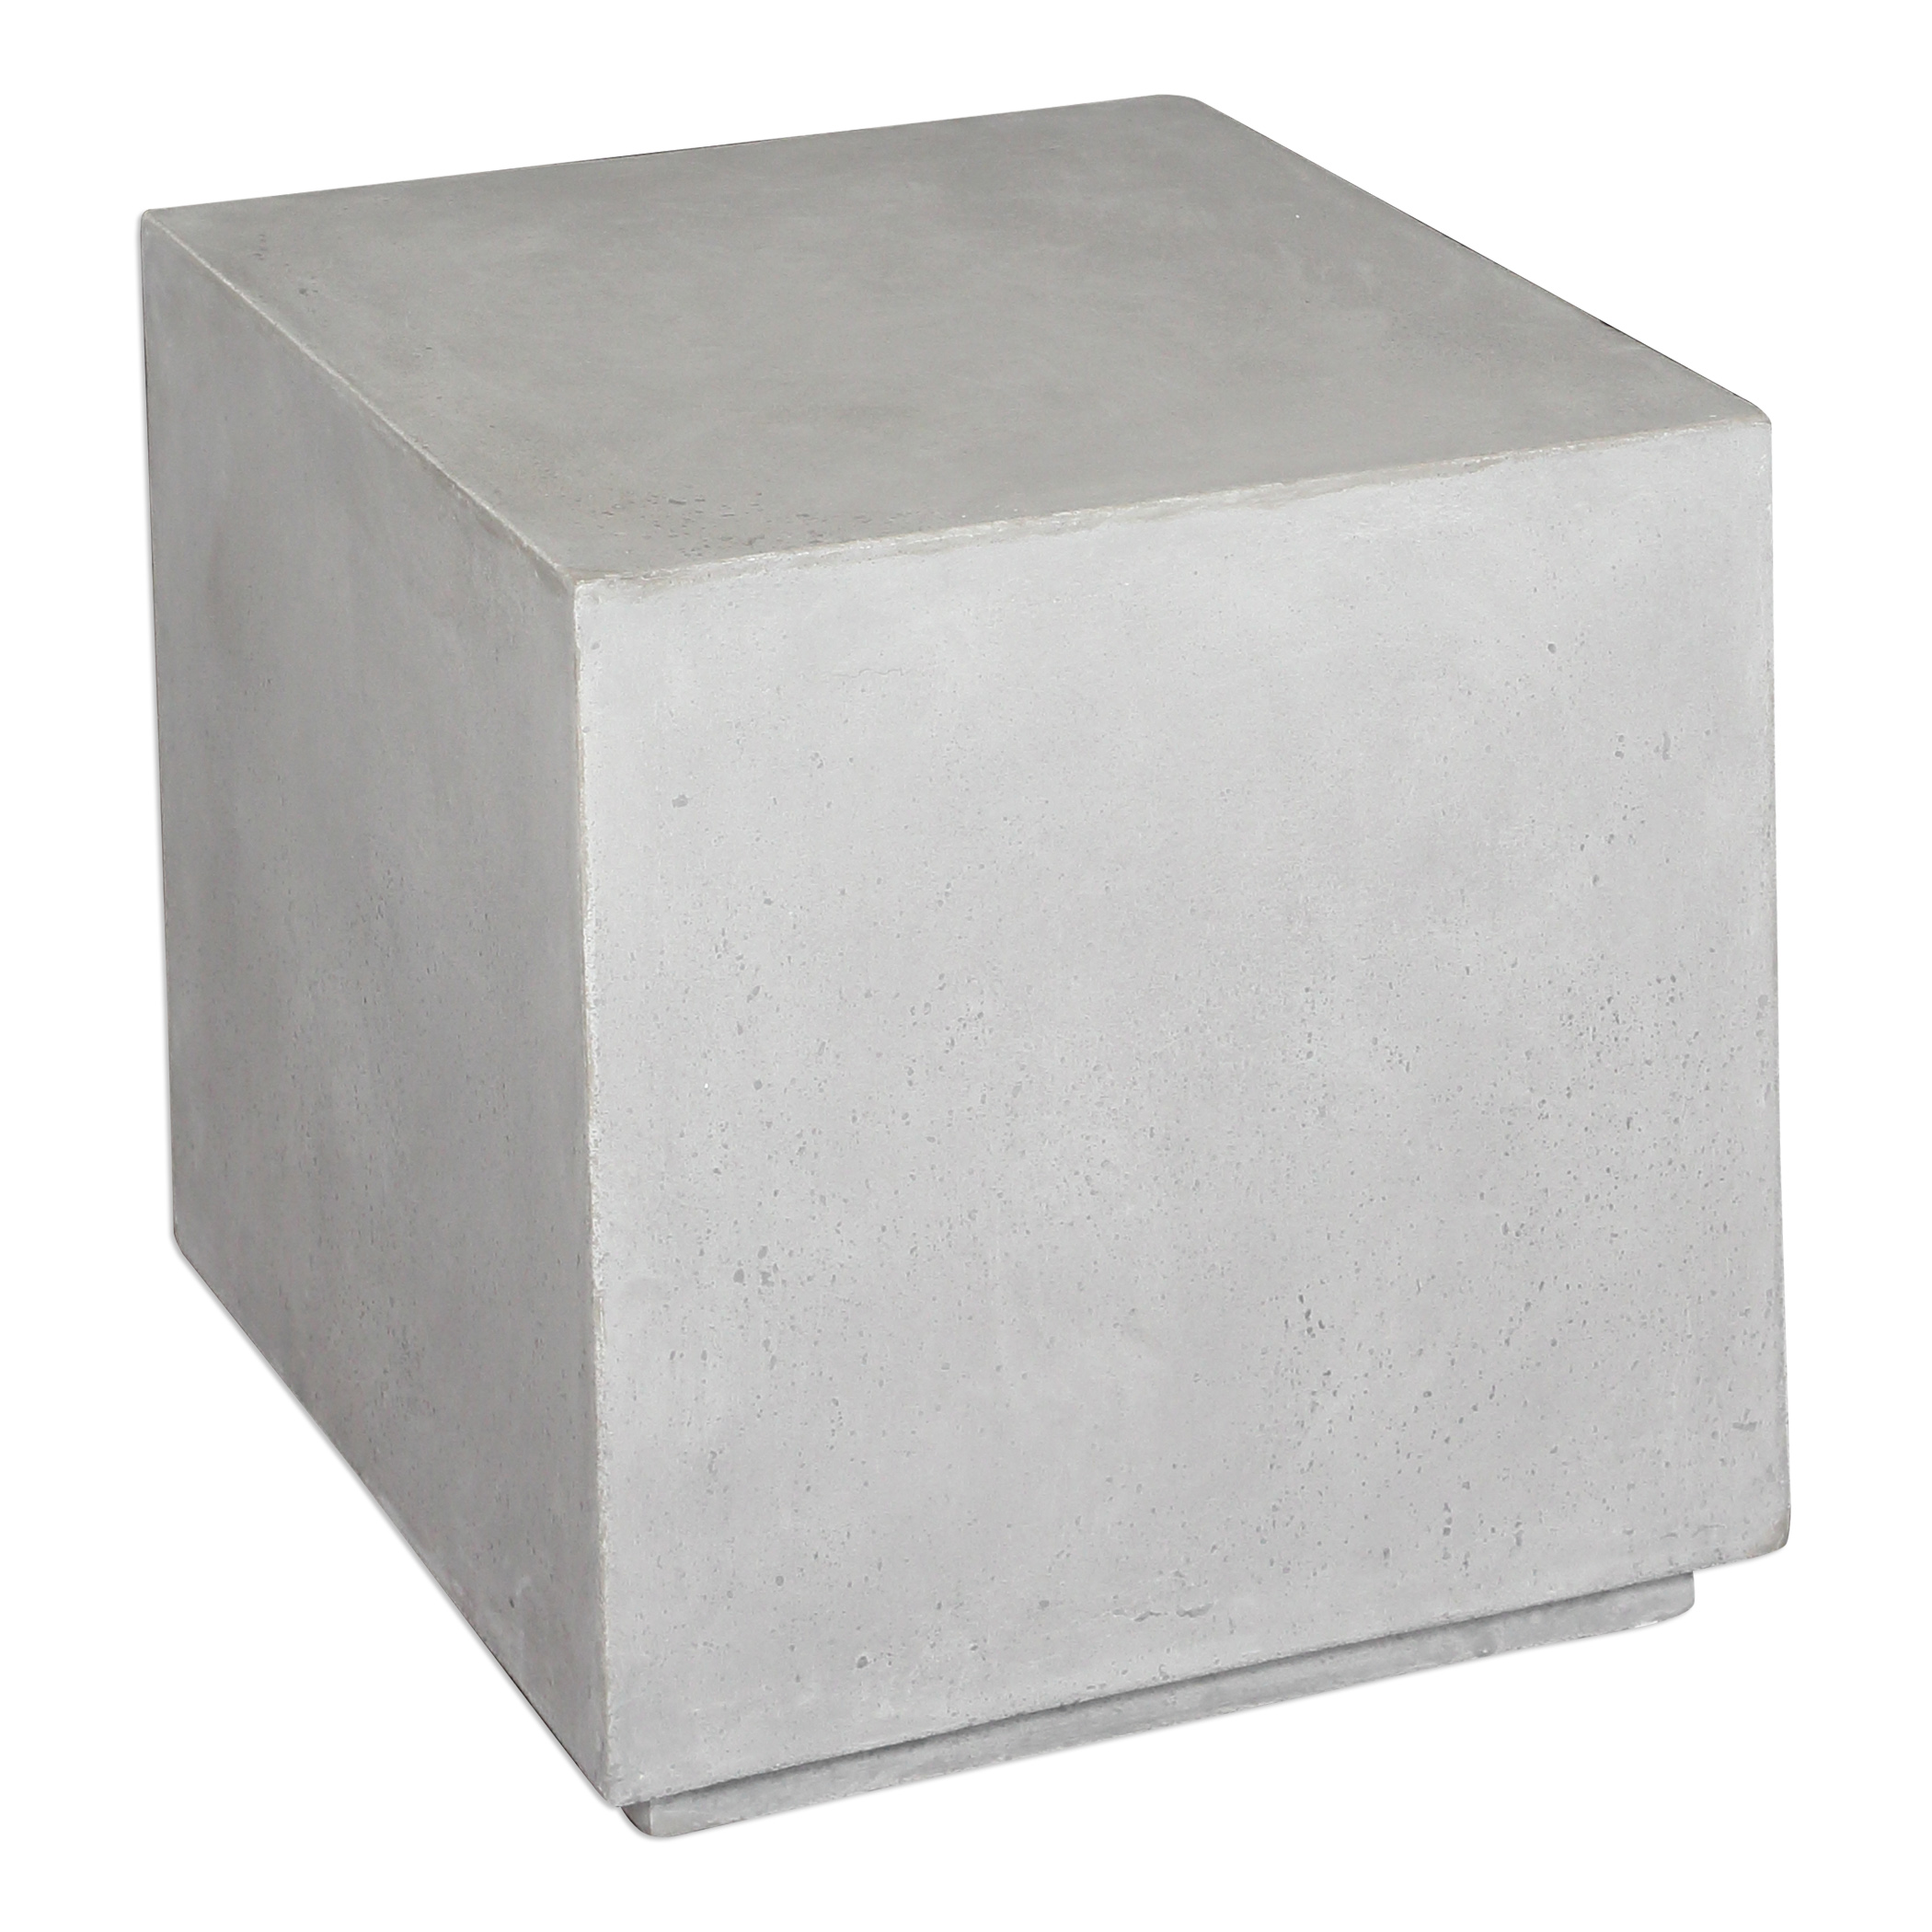 Uttermost Accent Furniture Zaire Industrial Cube Table - Item Number: 25901